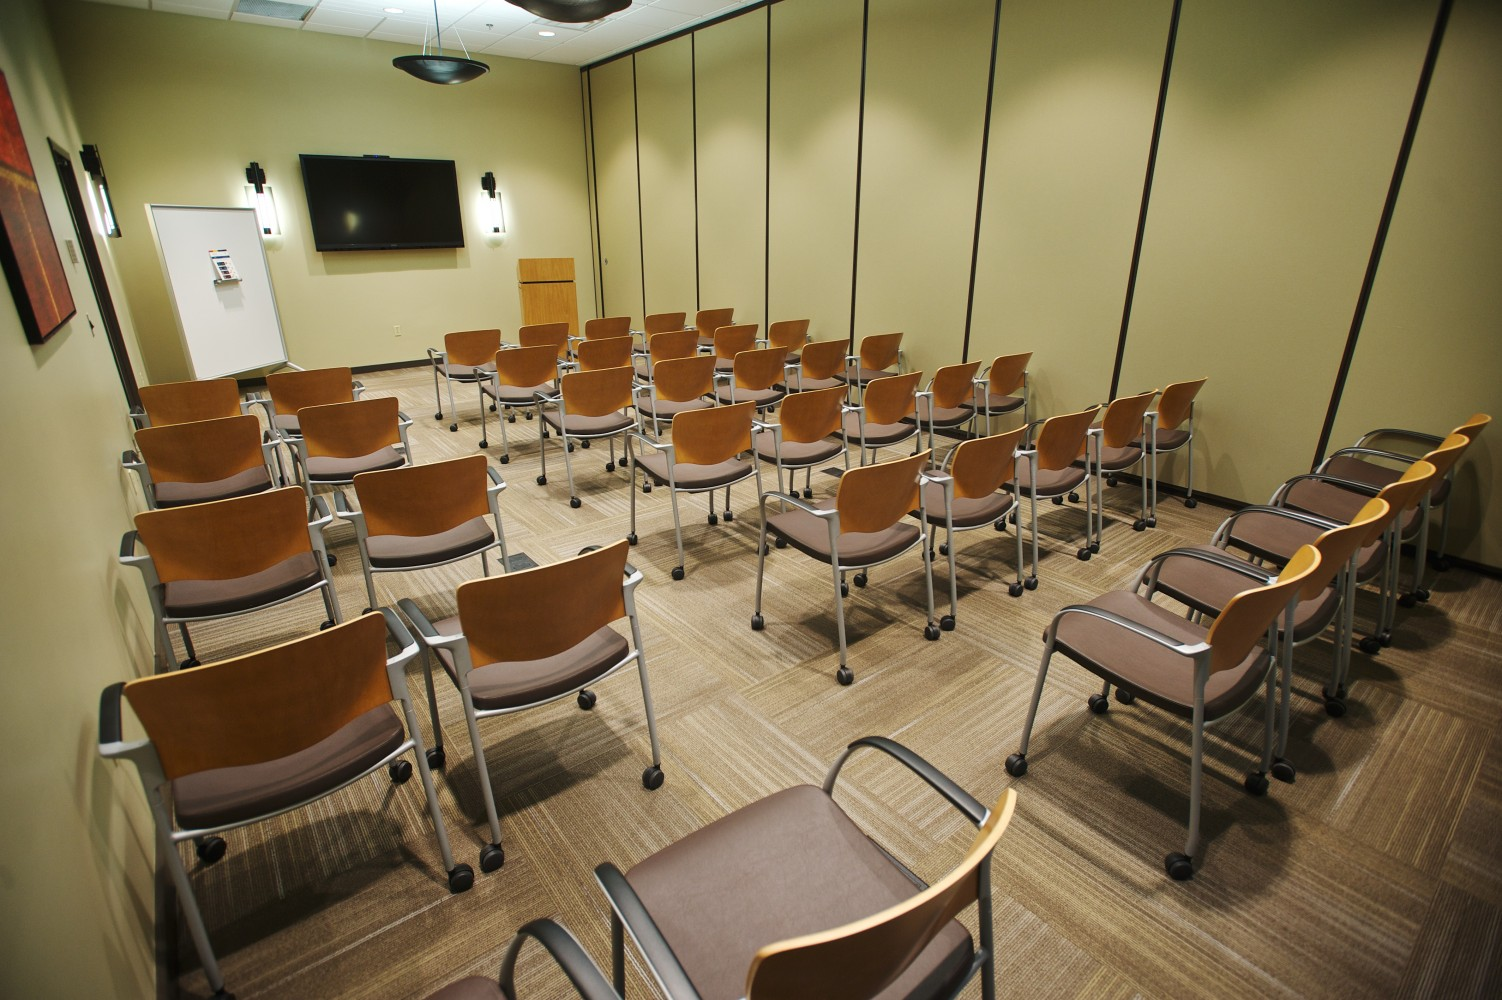 A small event space in Brentwood, TN at Envision Conference Center, we offer small conference space for rent, event space, meeting space and more!